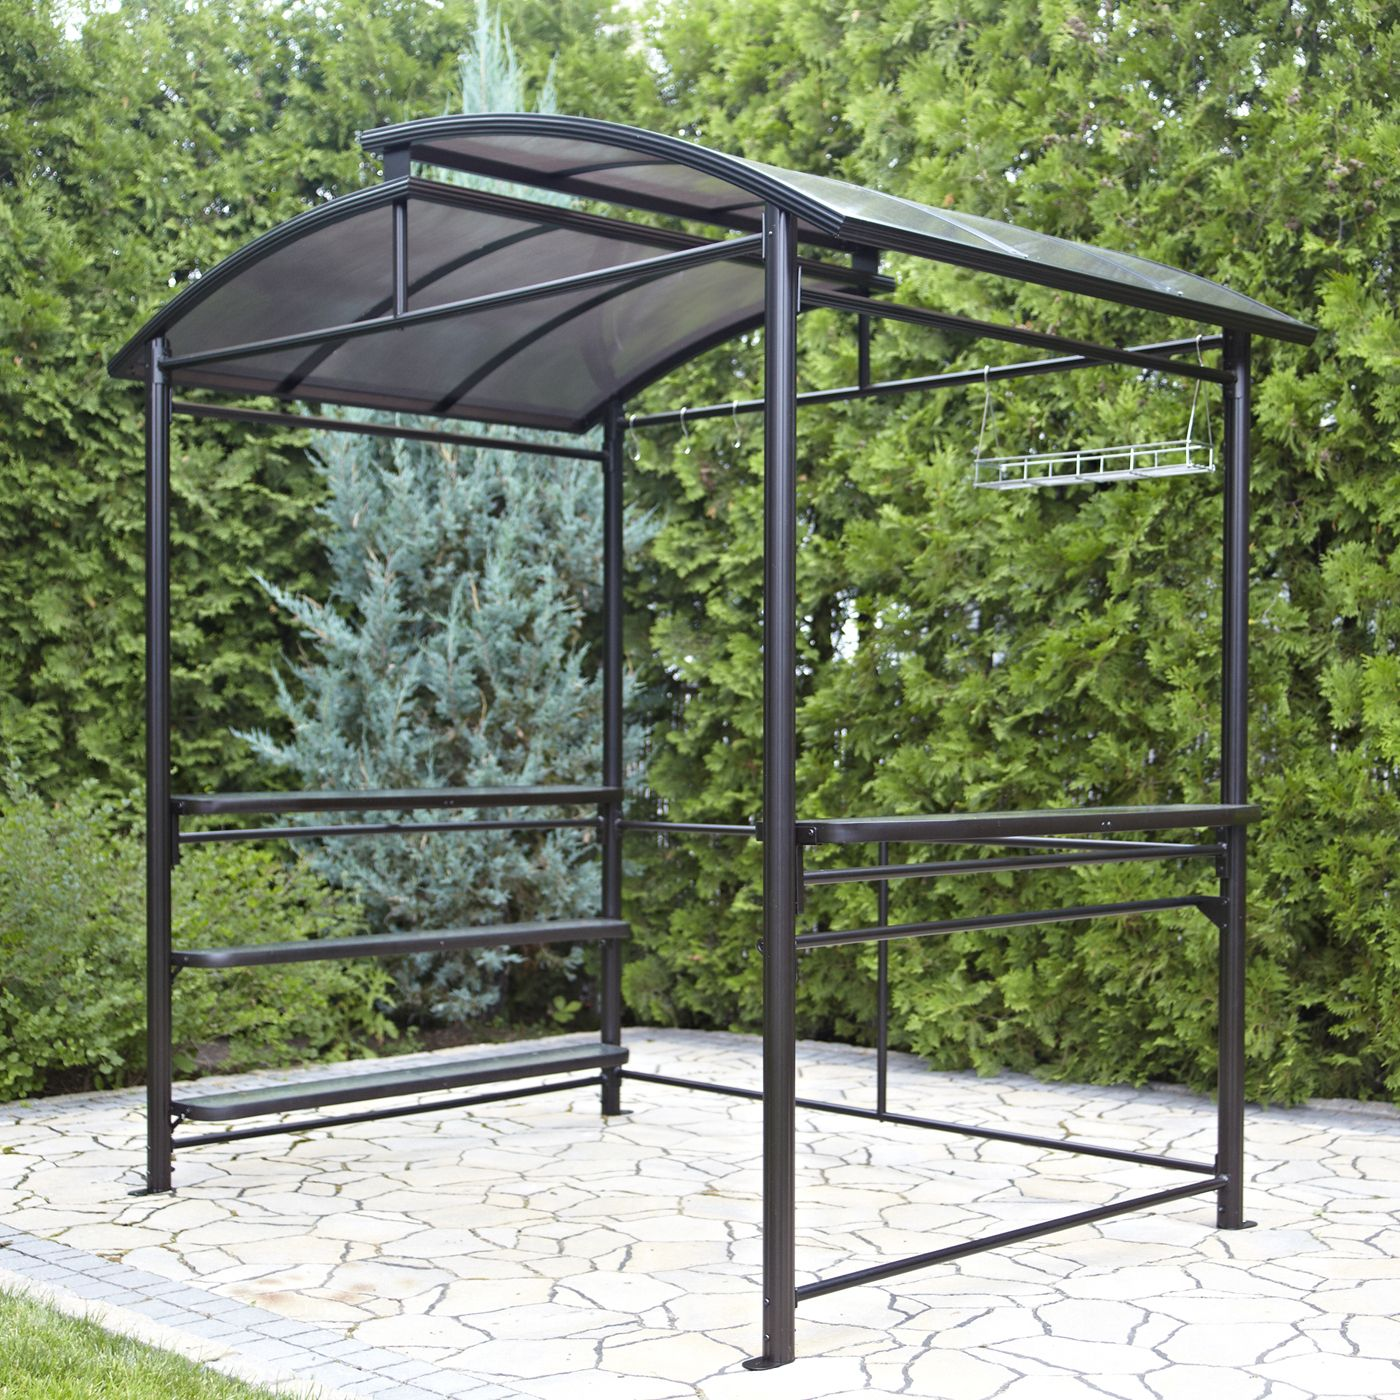 Grill Gazebo turns your yard into perfect place for a bbq With a